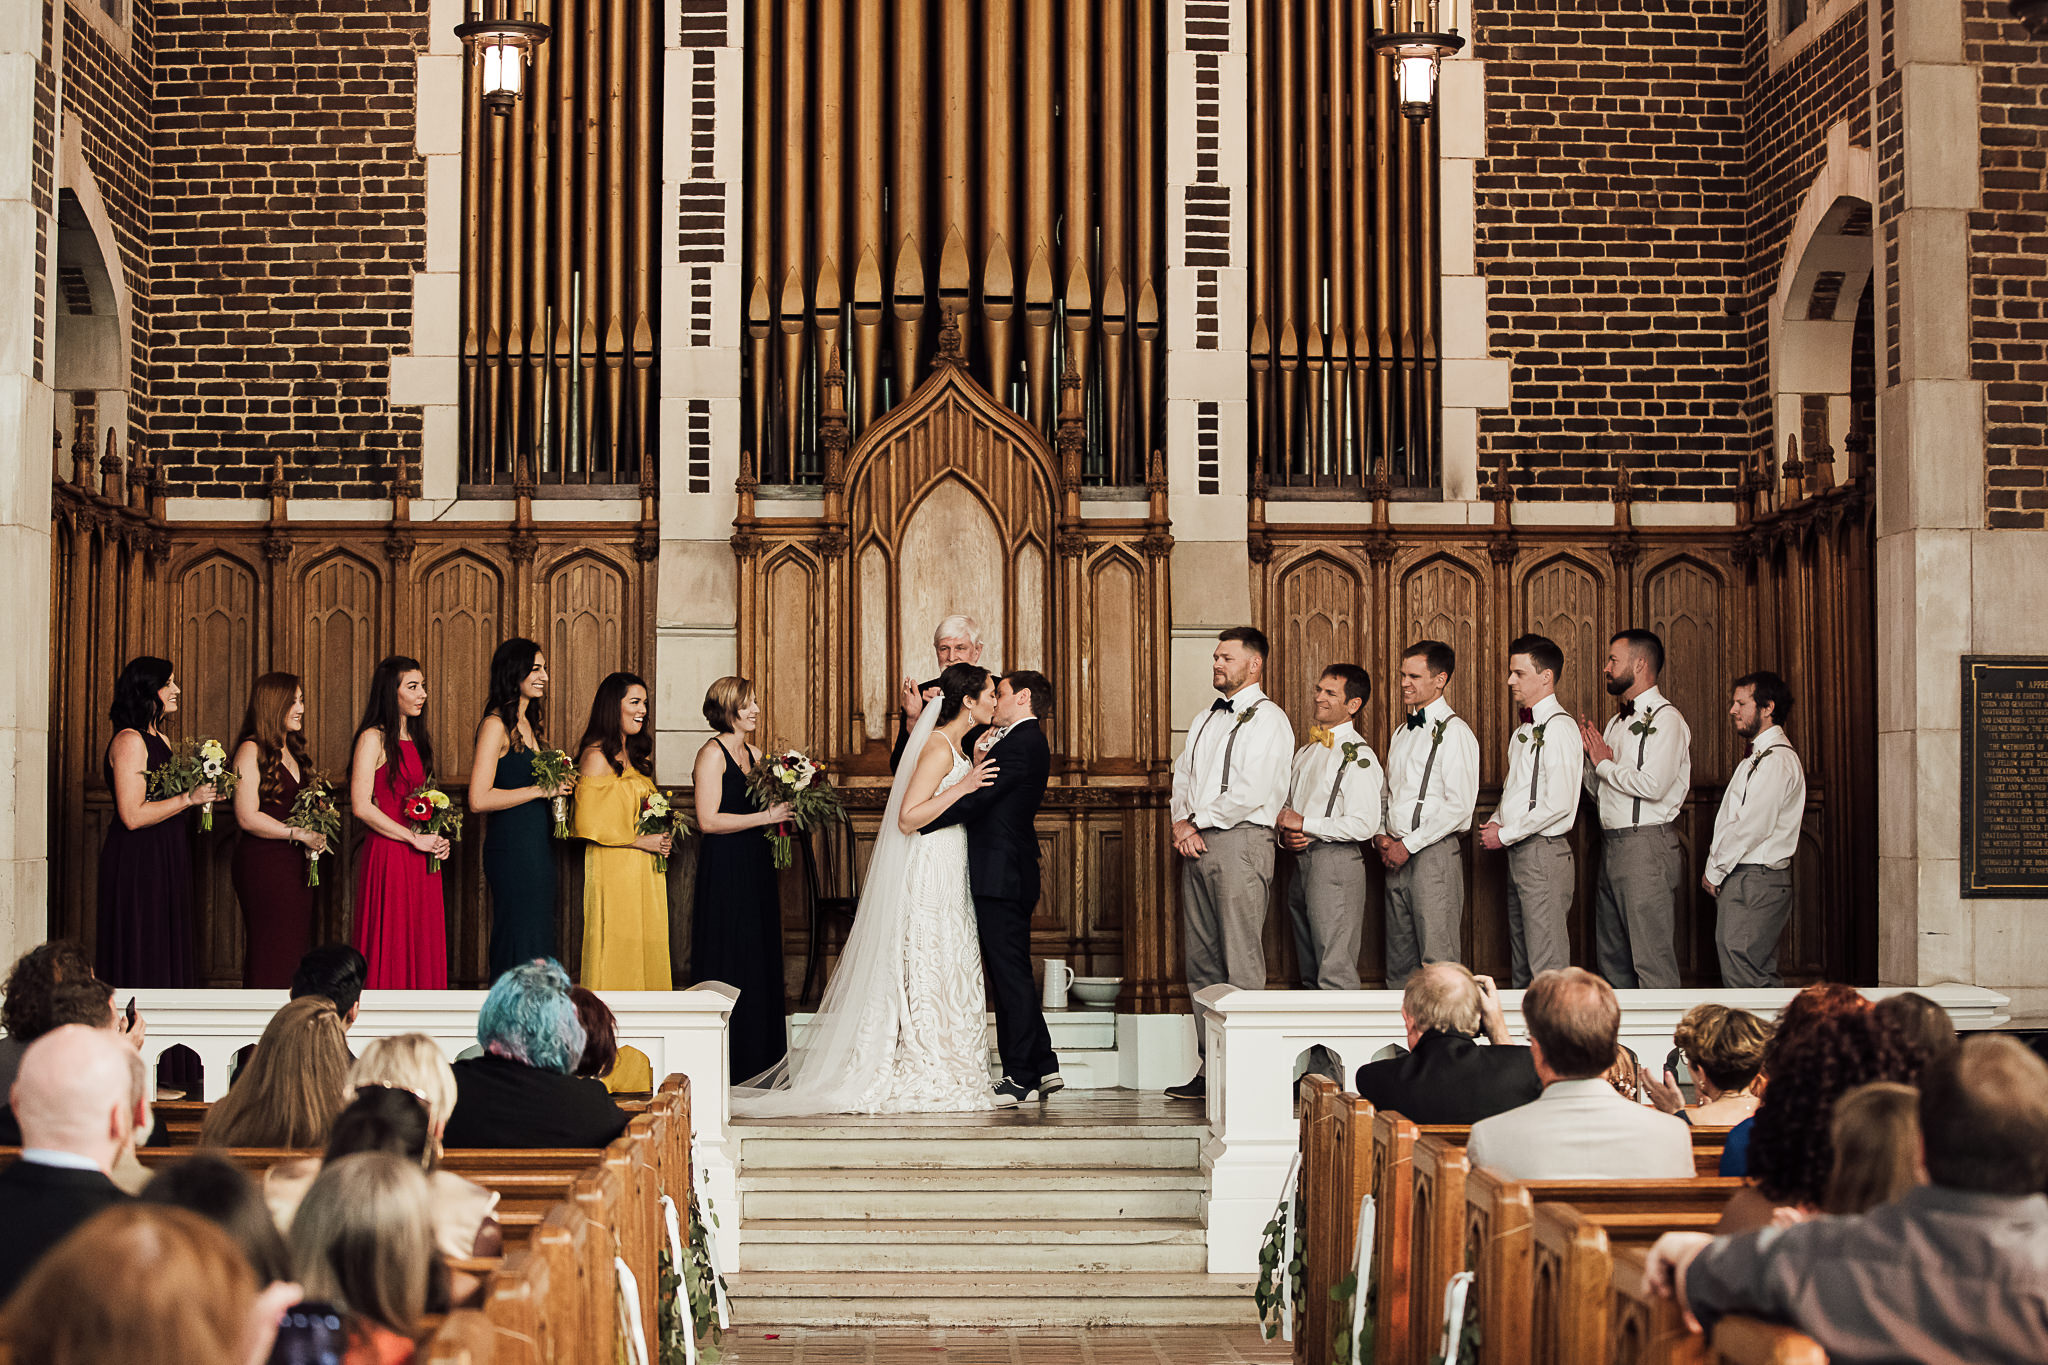 chattanooga-wedding-photographers-thewarmtharoundyou-waterhouse-pavilion-patten-chapel-wedding-sam-dusty (40 of 99).jpg